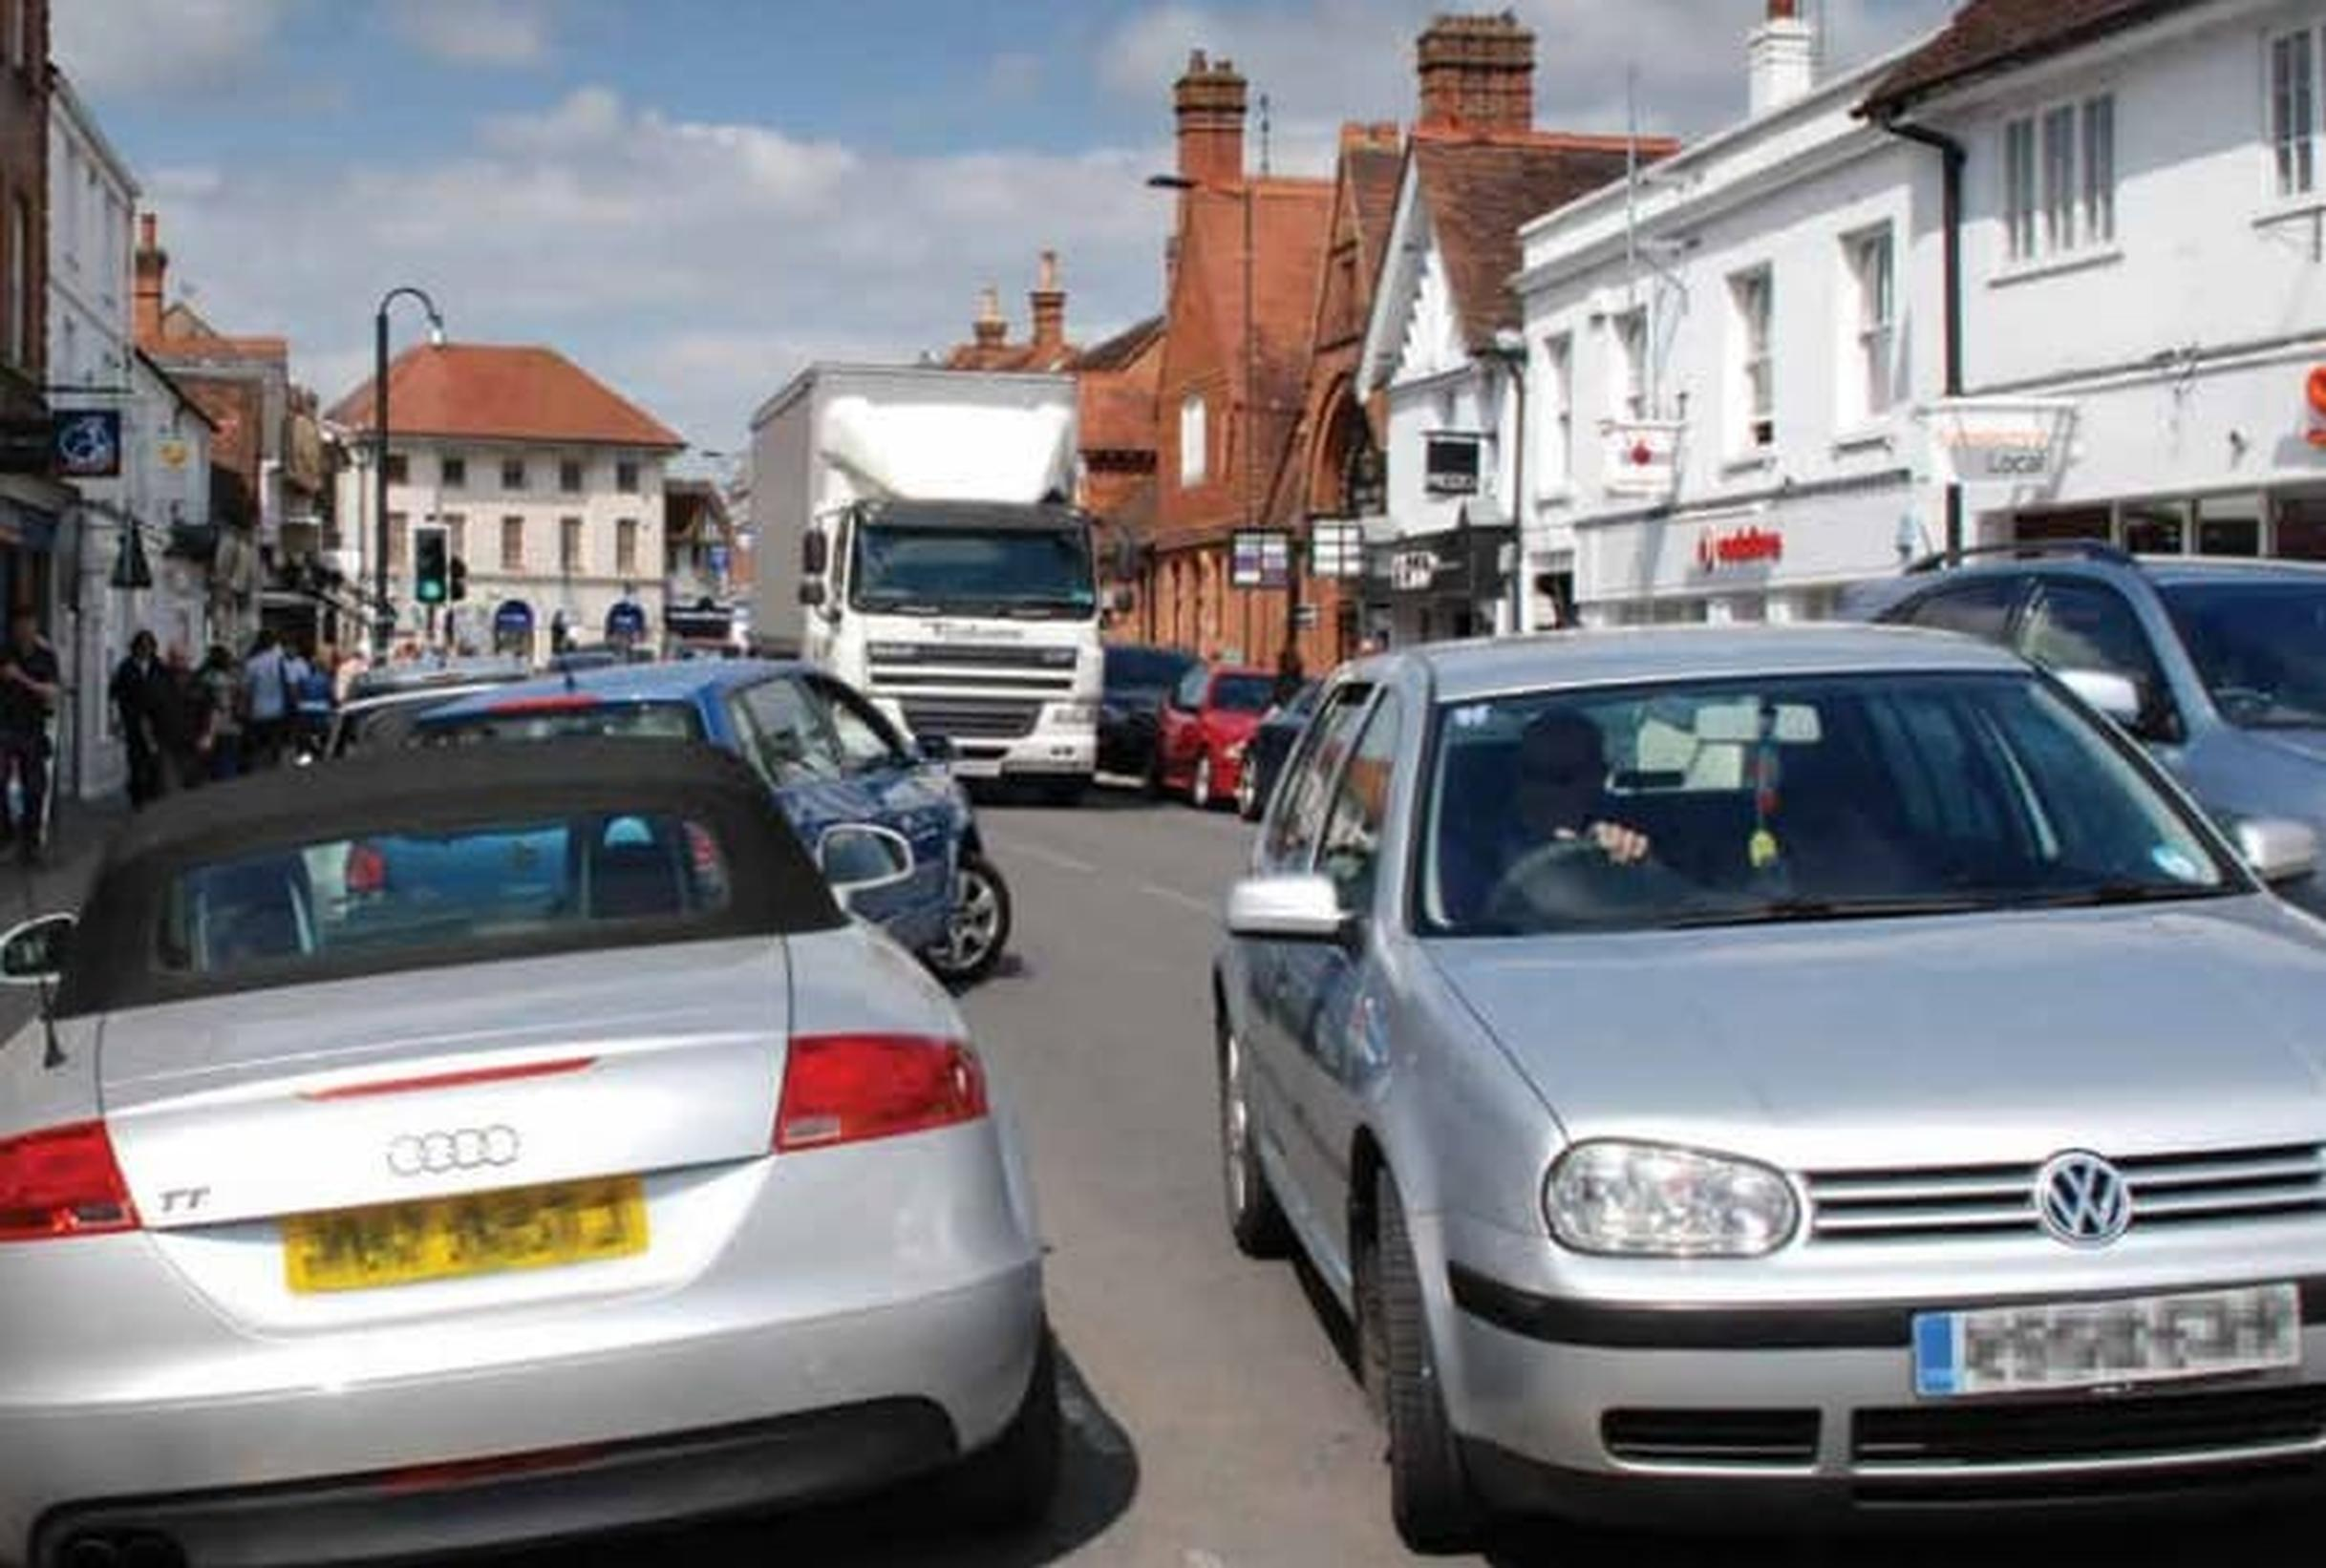 Cost and availability of parking is a growing concern for motorists, says RAC